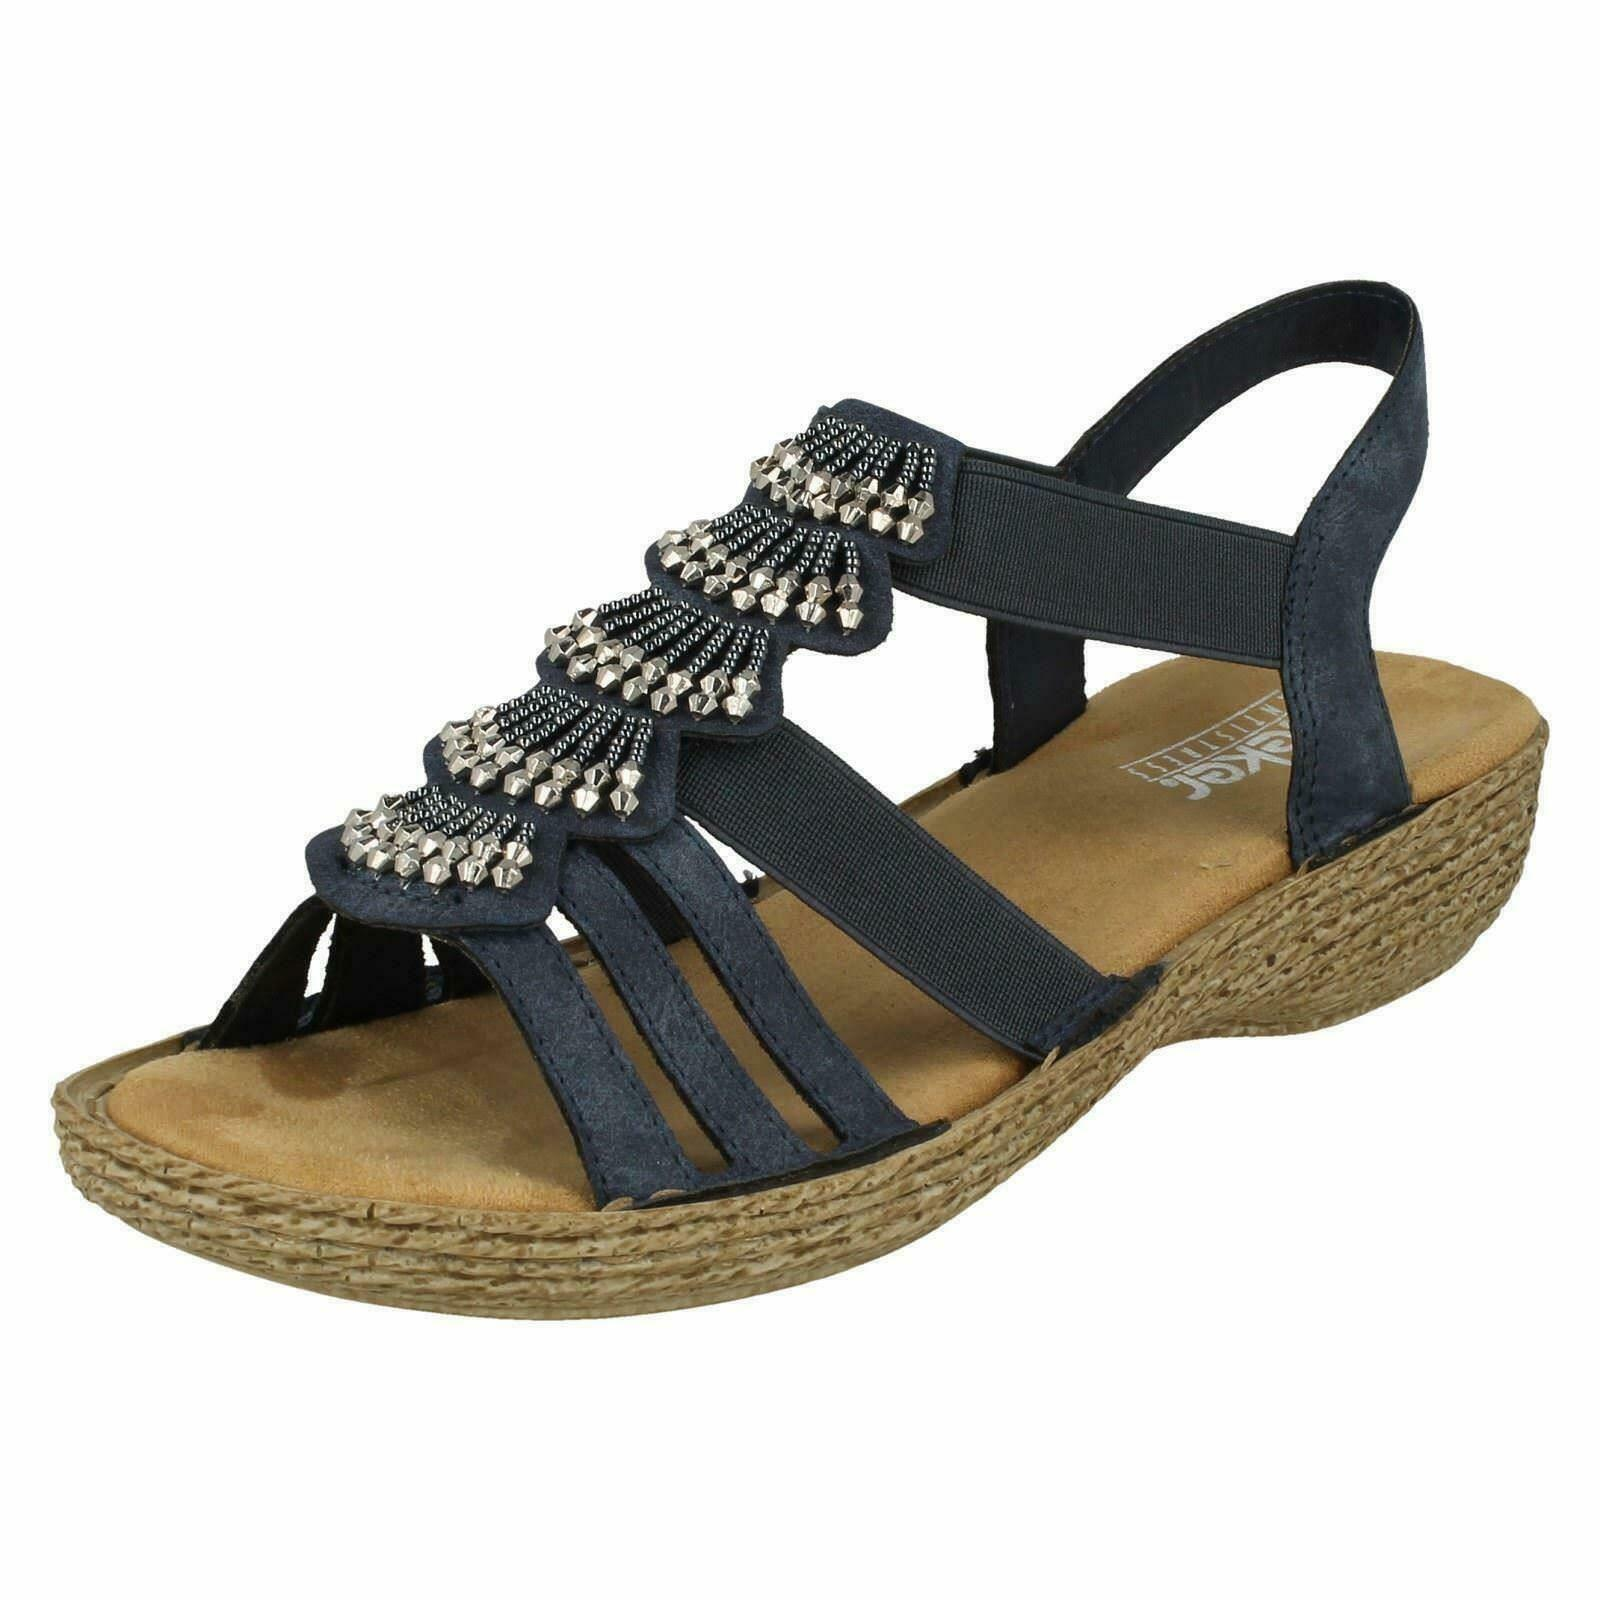 Rieker 65869 Navy Navy Navy Elastic Slingback Sandal With Microfibre Insole & Silver Studs 778c62